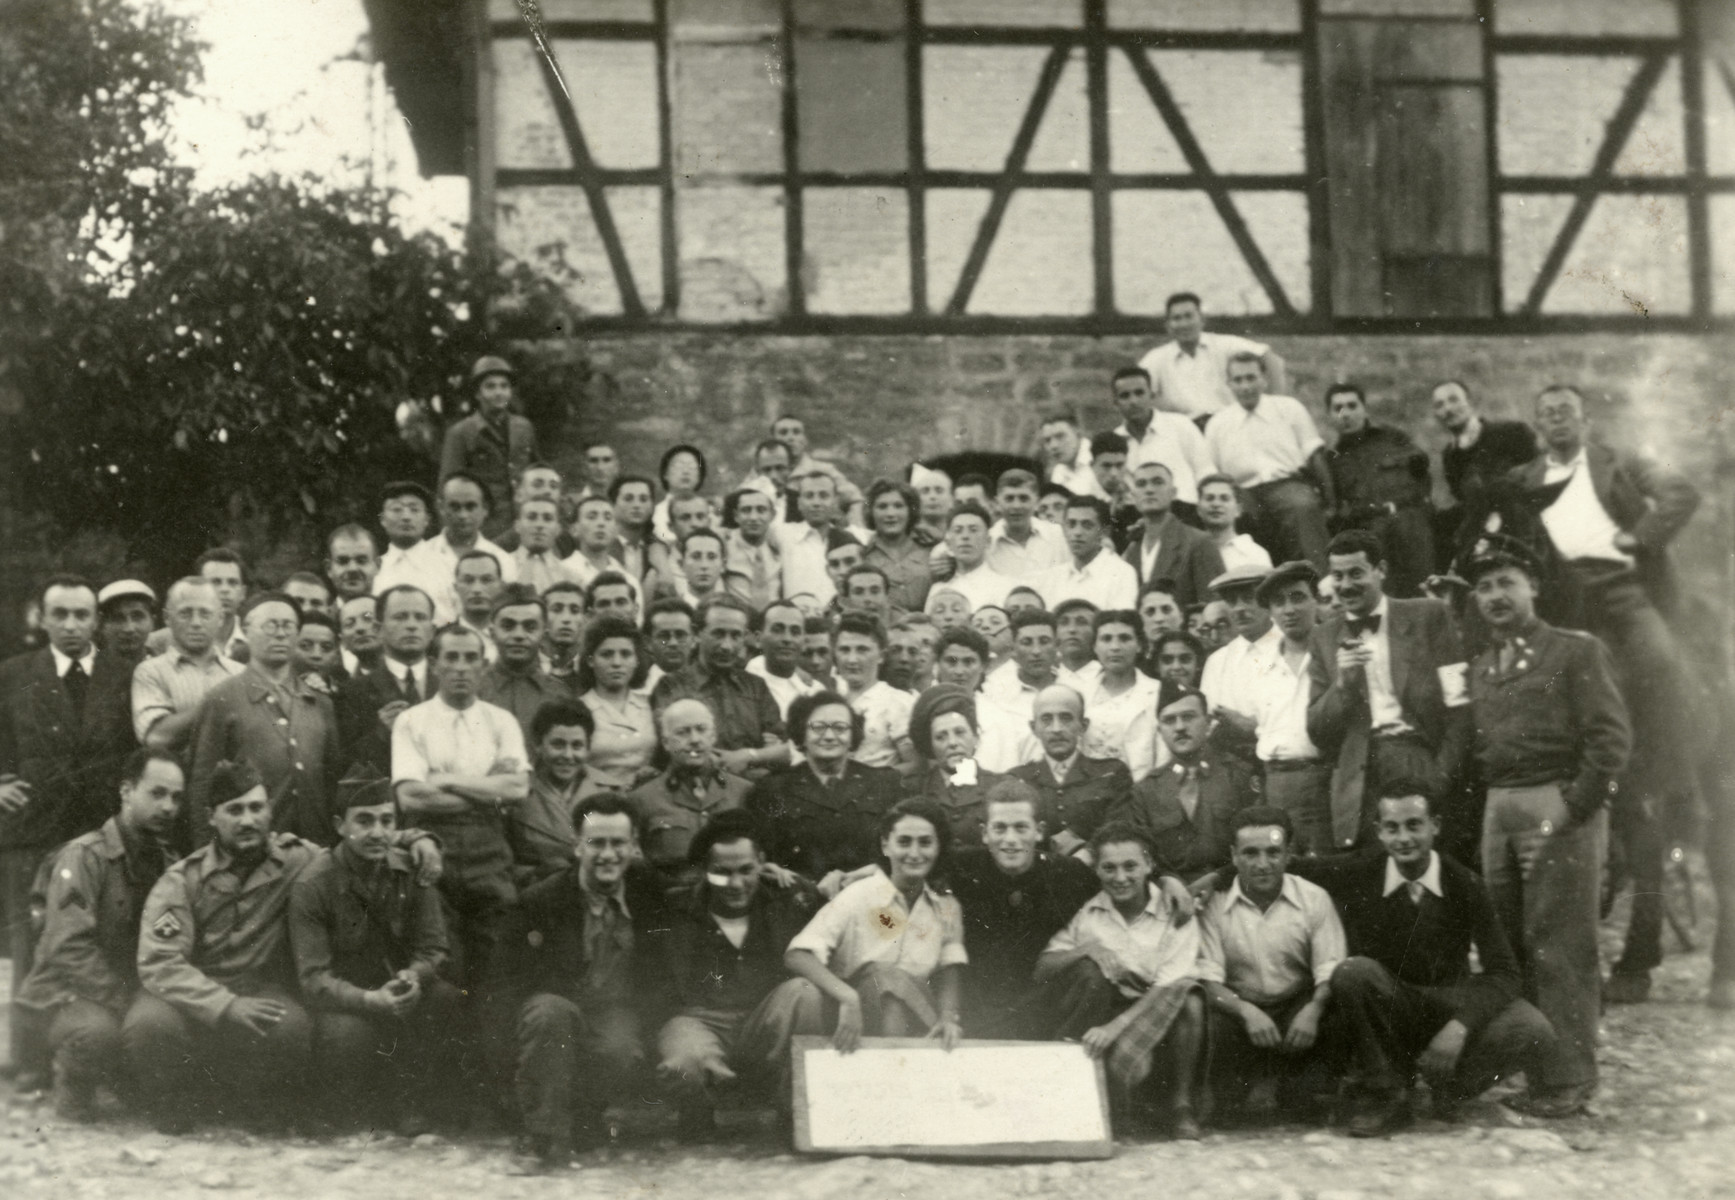 Group portrait of Zionist youth and American soldiers in Kibbutz Buchenwald